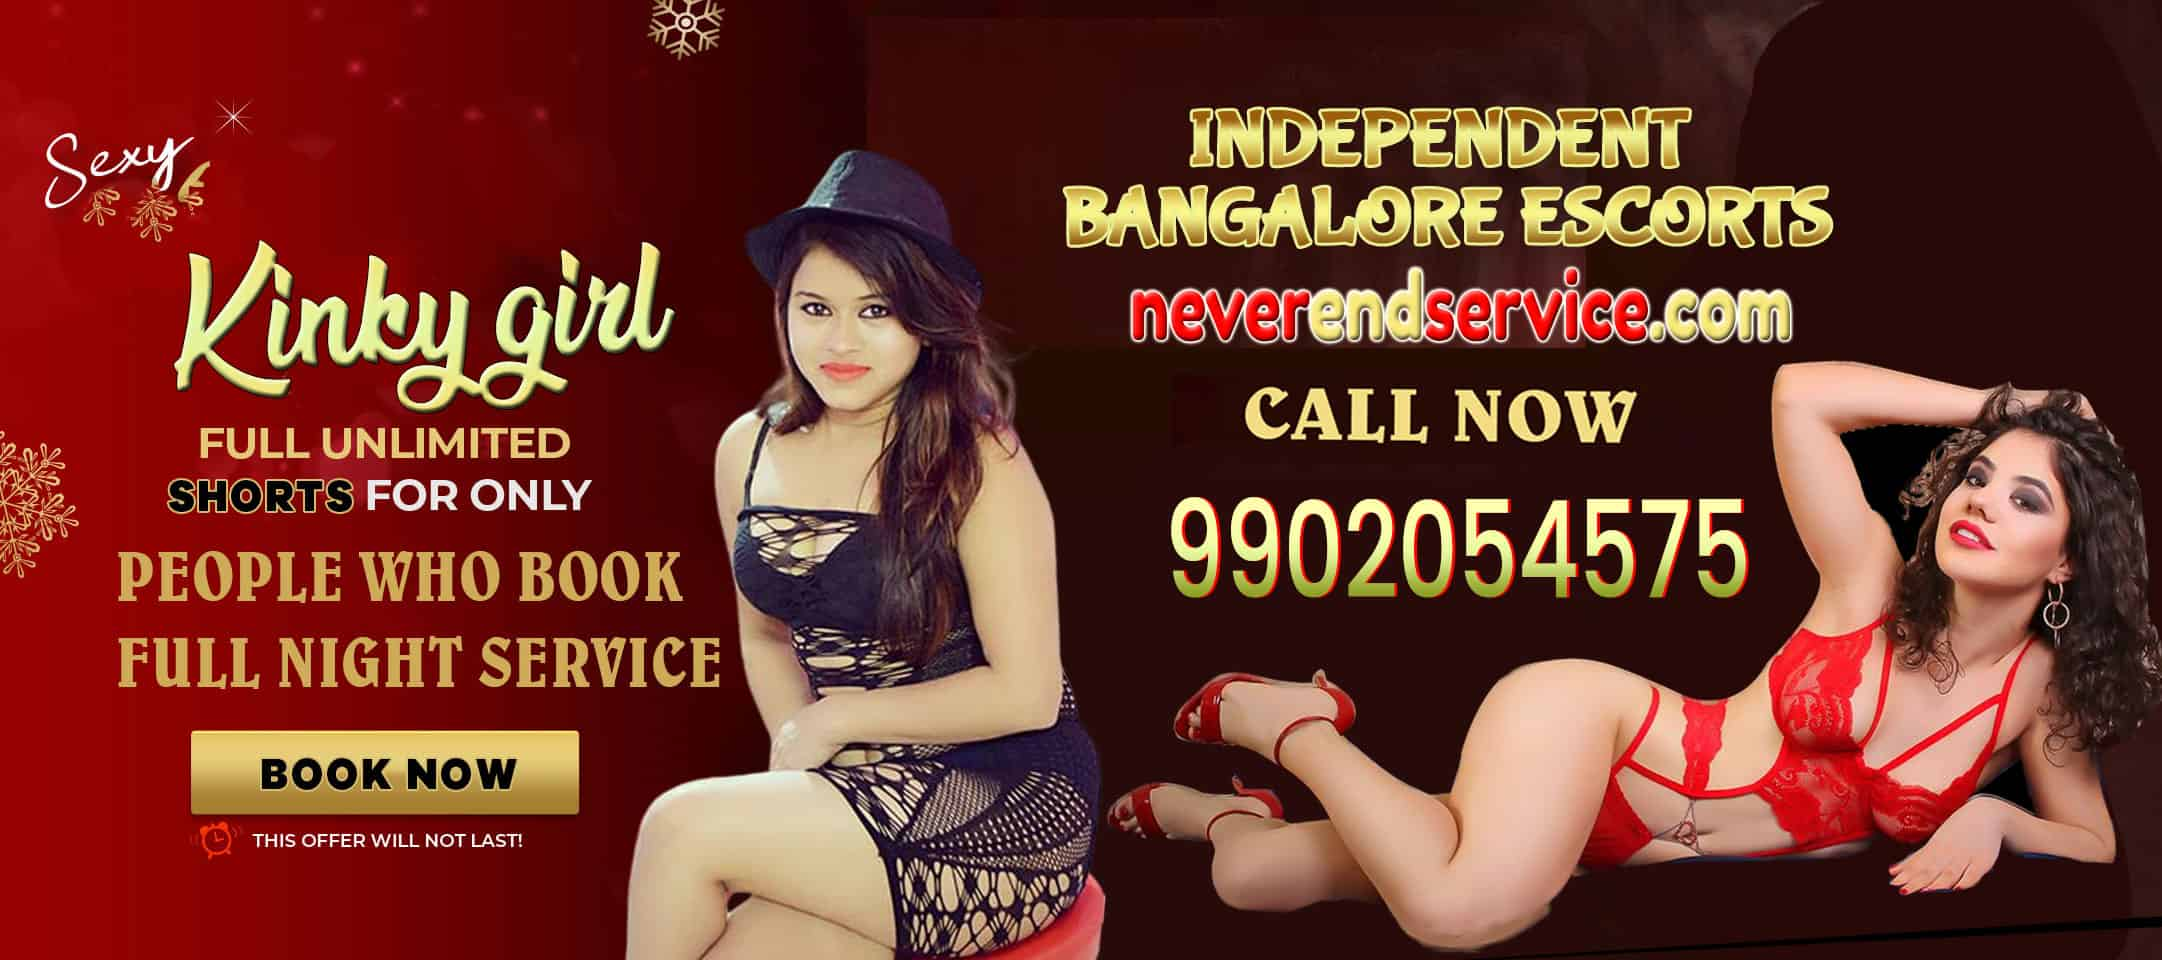 Independent call girls